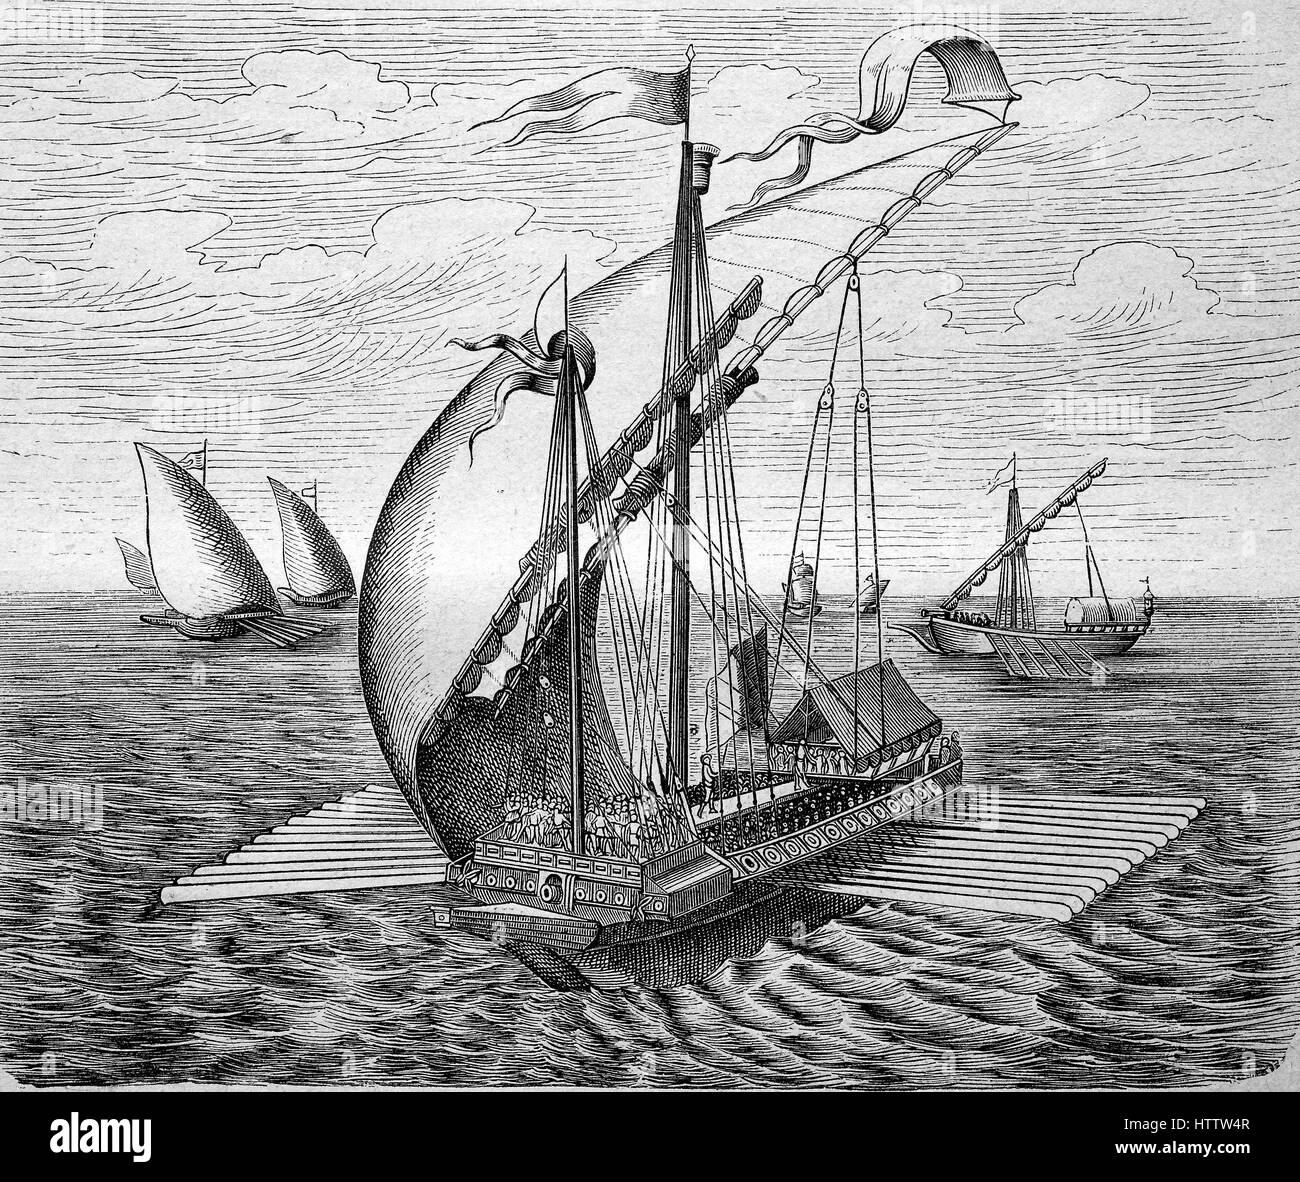 A Venetian galley sailing ship, Venice, Venezia, Italy, reproduction of a woodcut from 1882, digital improved - Stock Image